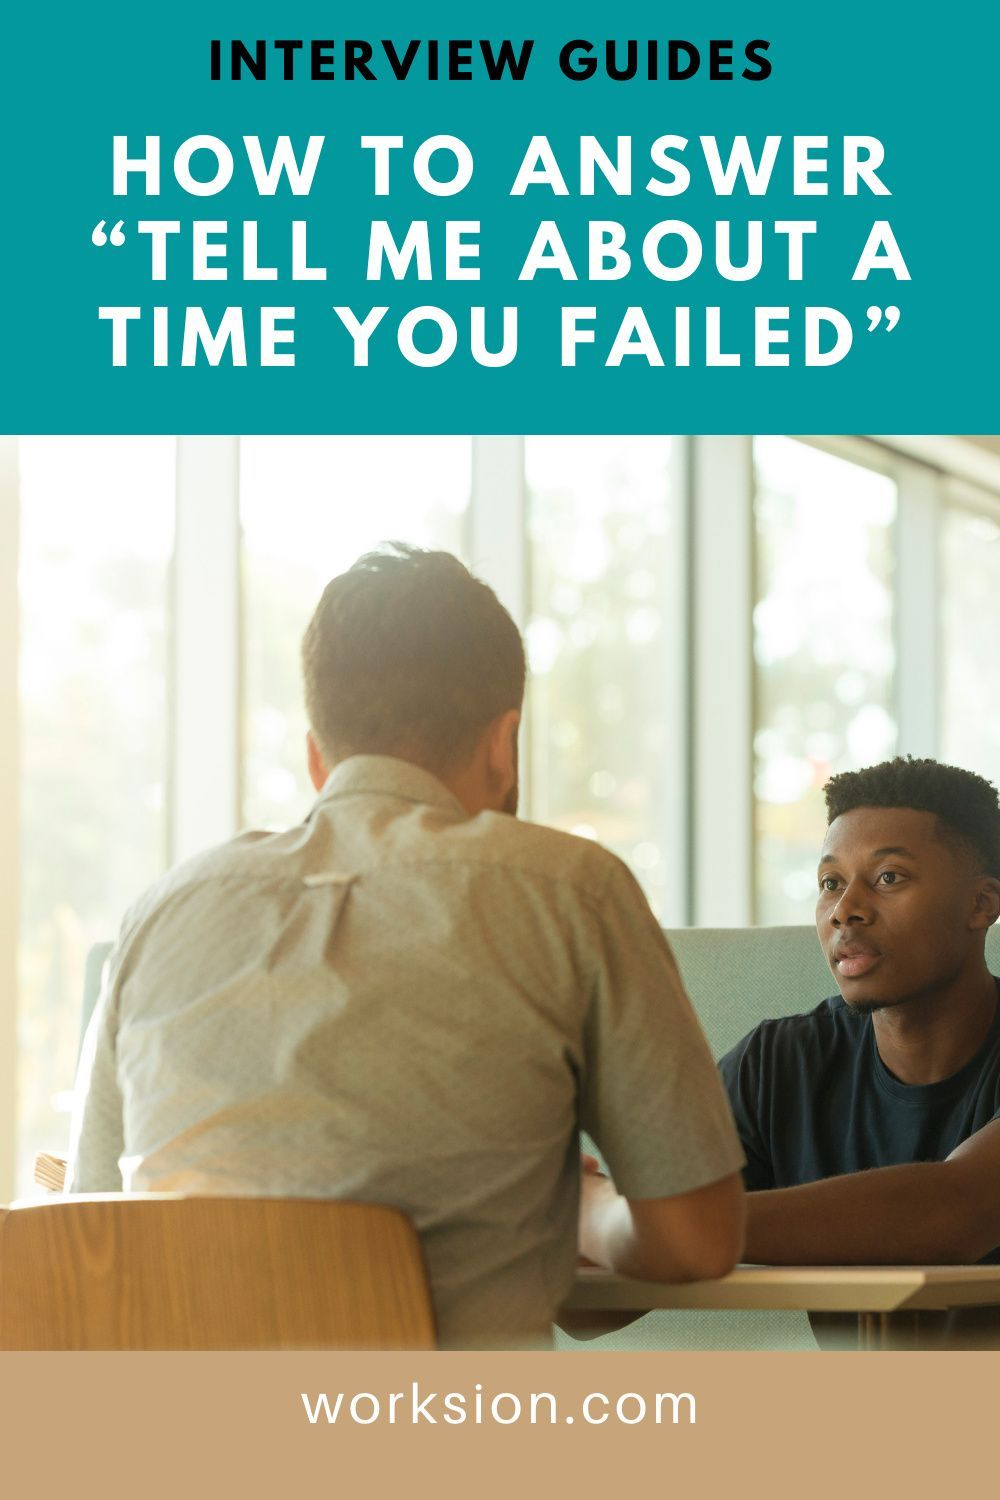 How To Answer Tell Me About A Time You Failed In An Interview Career Motivation Interview Guide Career Growth